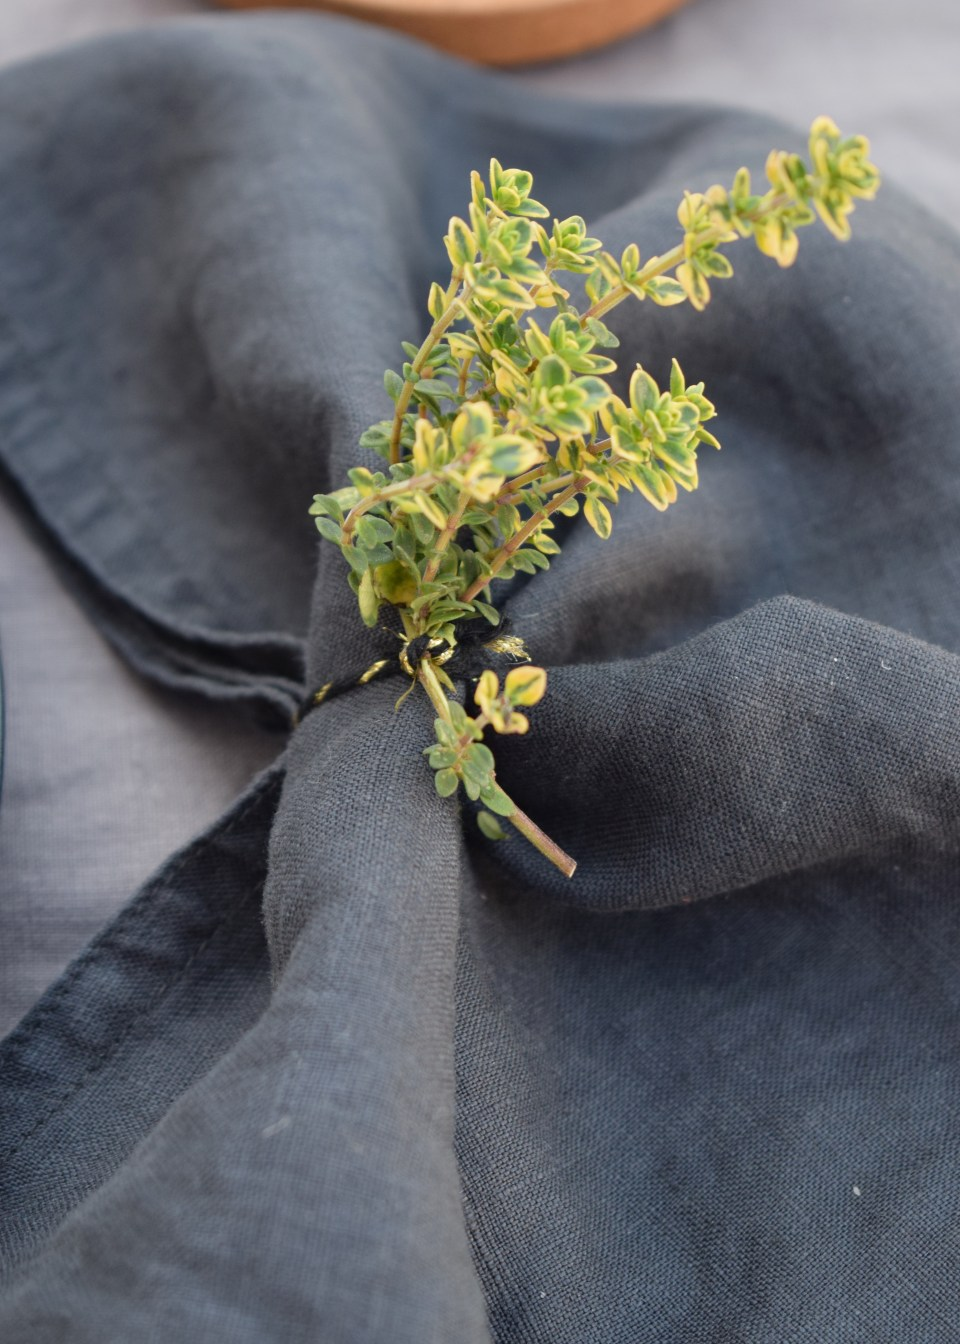 simple relaxed outdoor tablescape ideas, scandinavian linen botanical, simple lemon thyme sprig crumpled linen